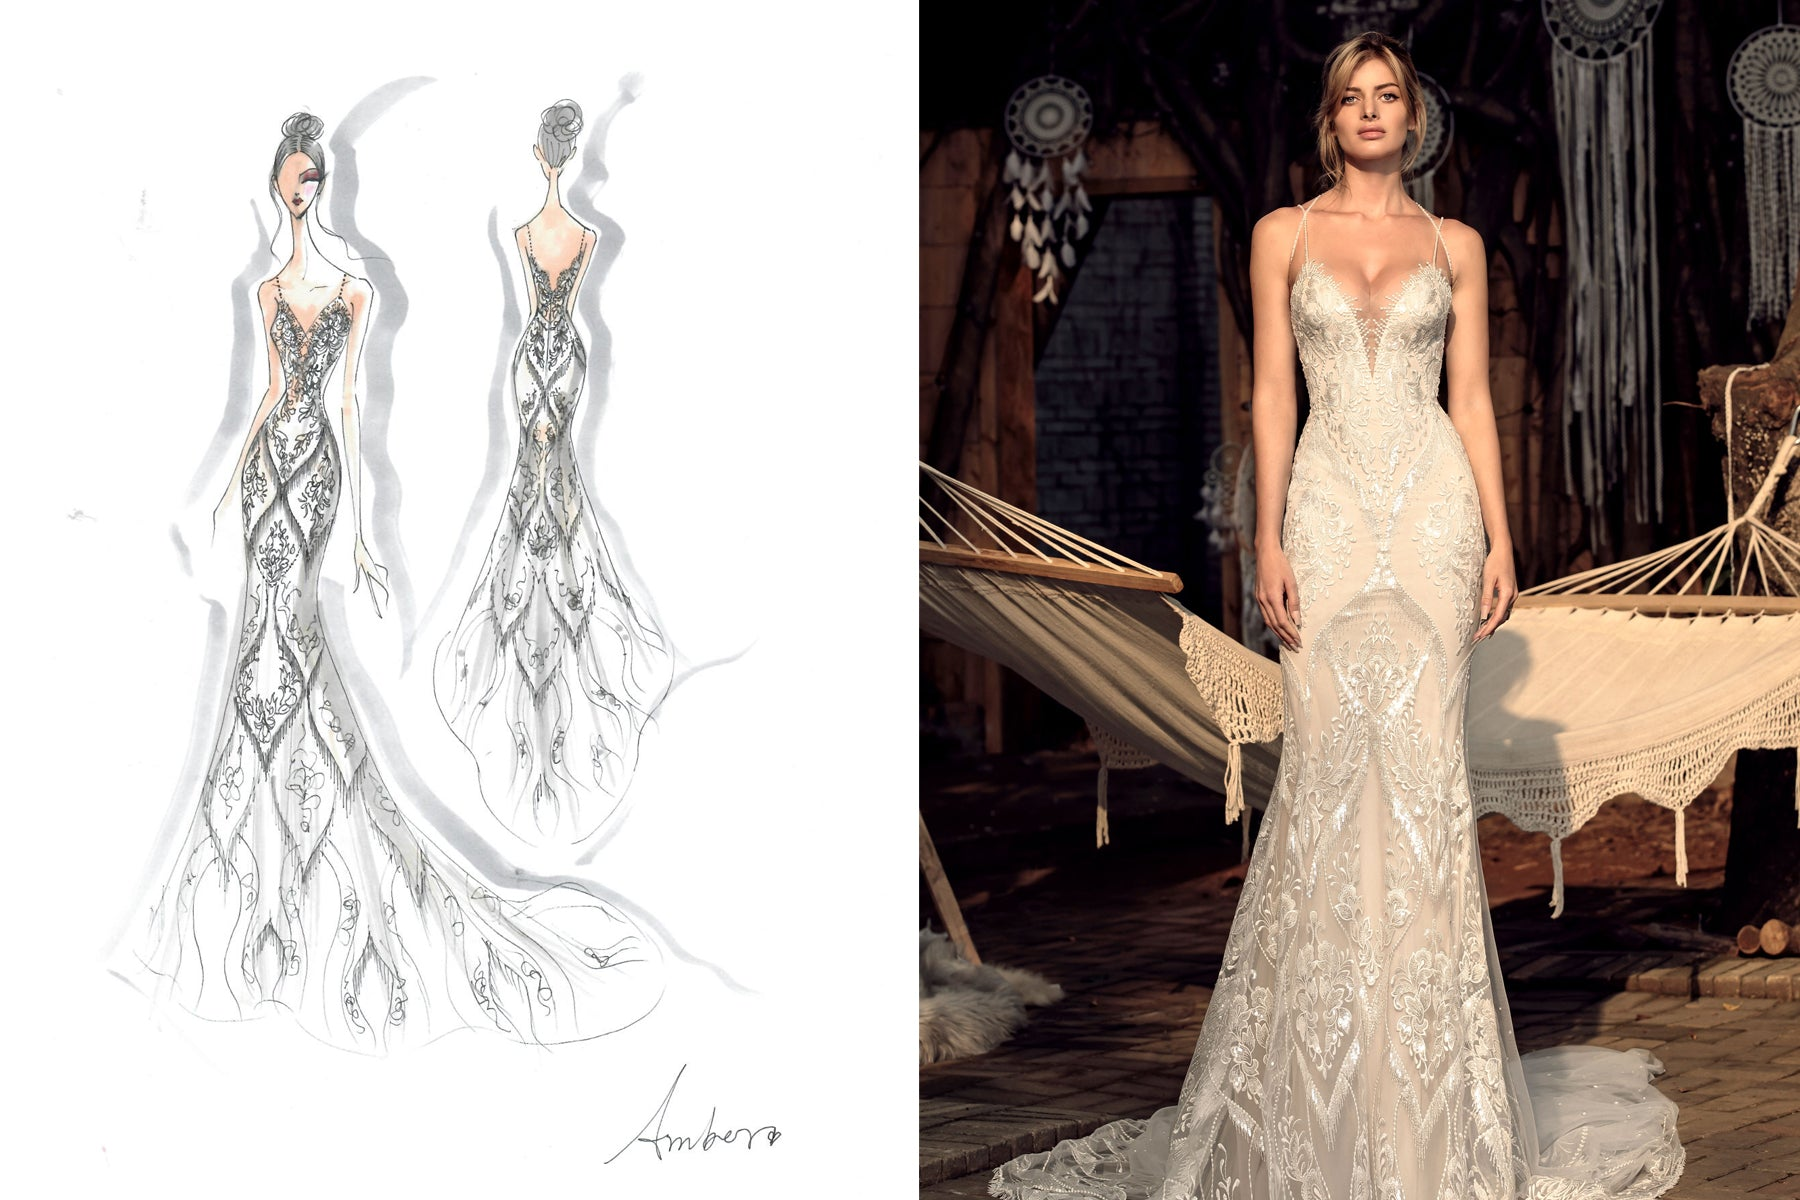 Eternal-bridal-wedding-dress-chic-nostalgia-mellow-collection-roza